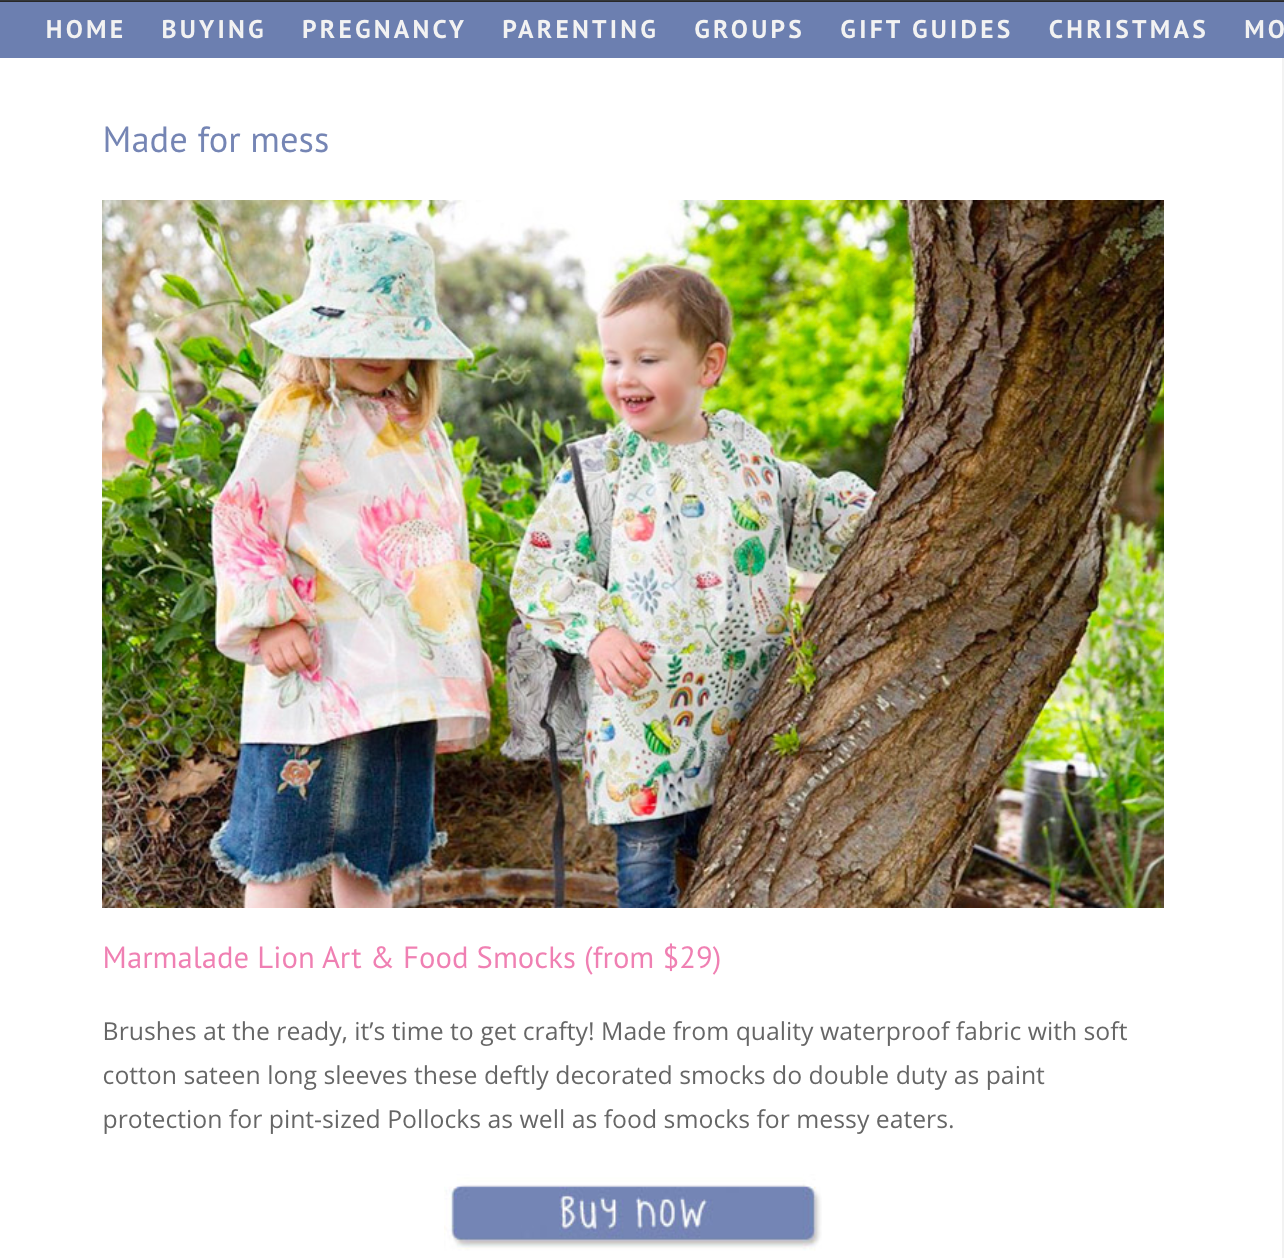 Mum's Grapevine Gift Ideas for Two year olds - featuring Marmalade Lion Art Smocks